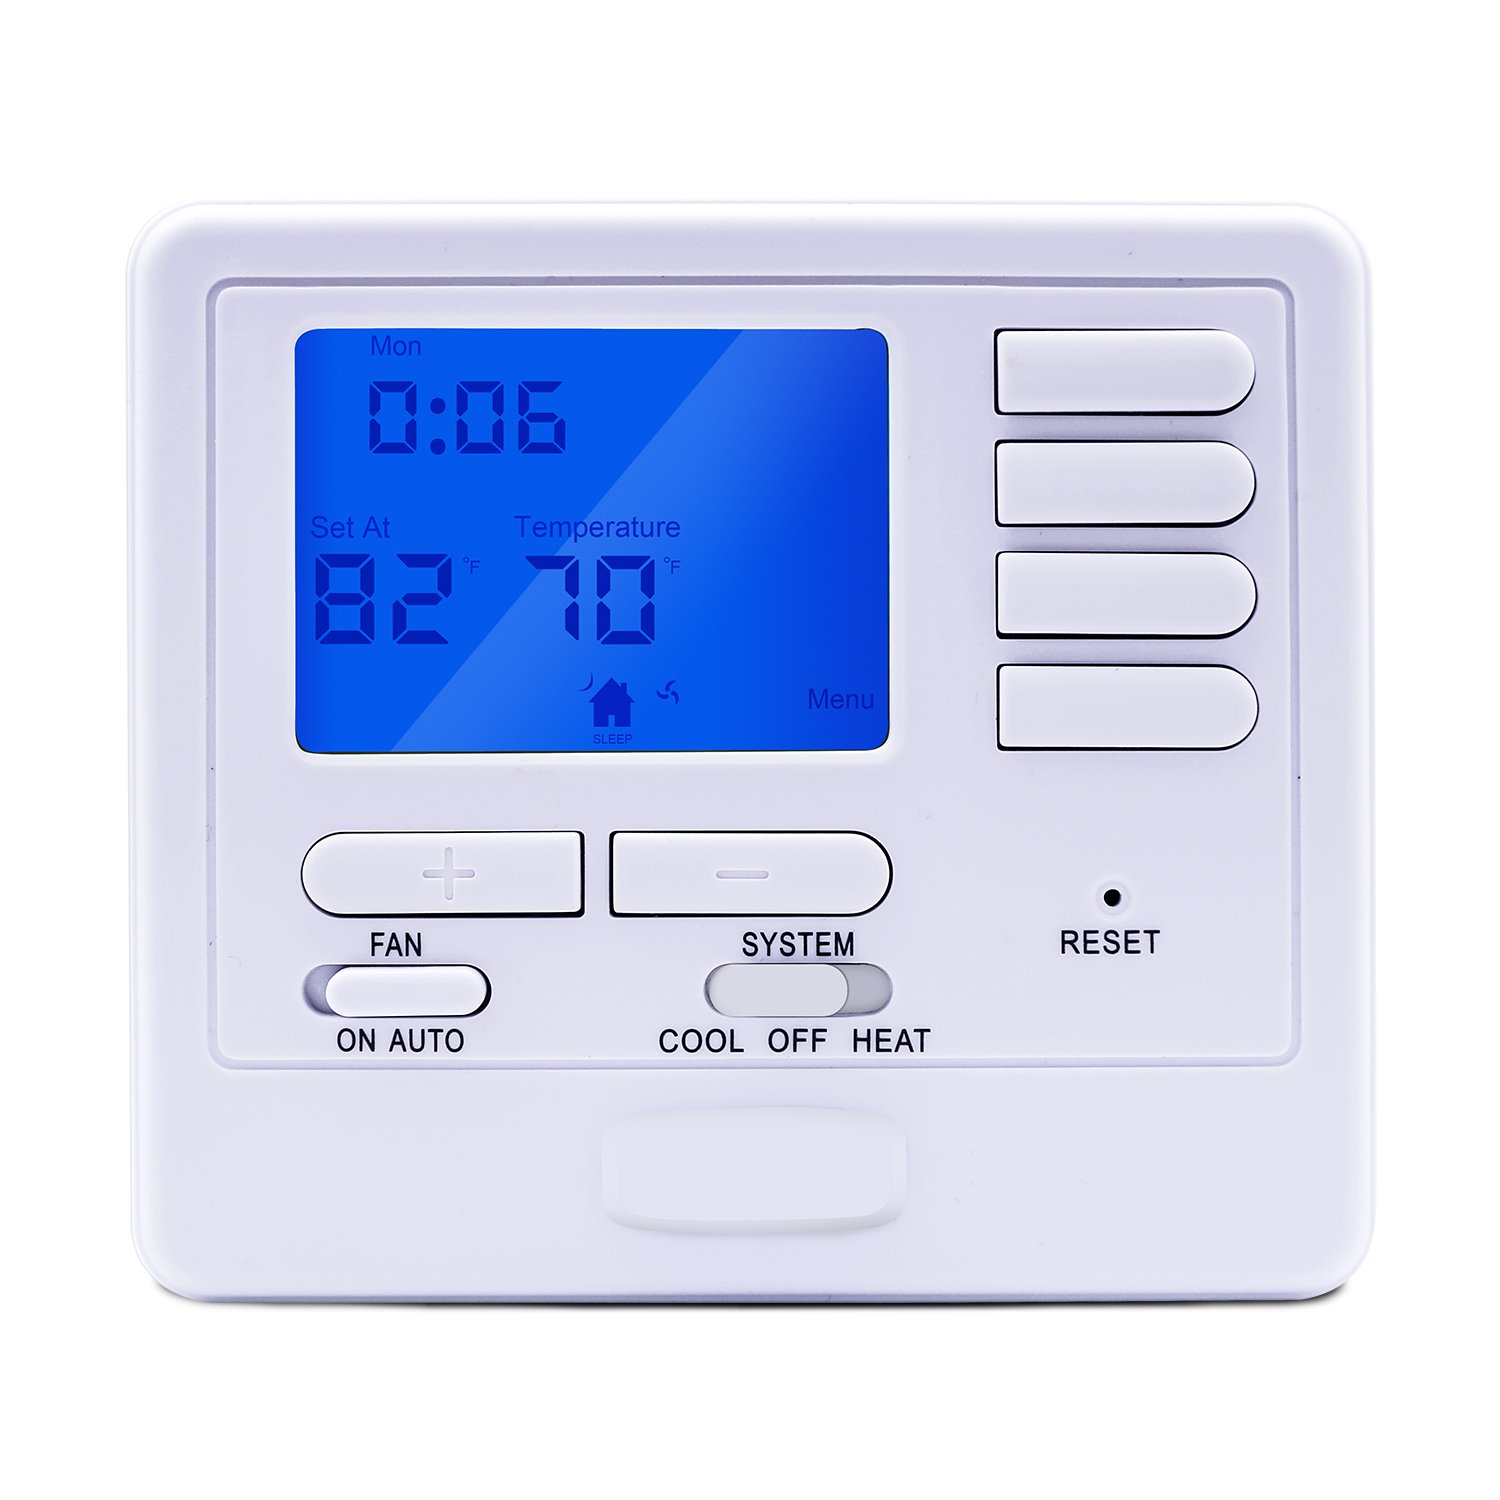 Briidea S715 Universal 5-1-1 Day Programmable Thermostat, 2C/2H with Dual powered